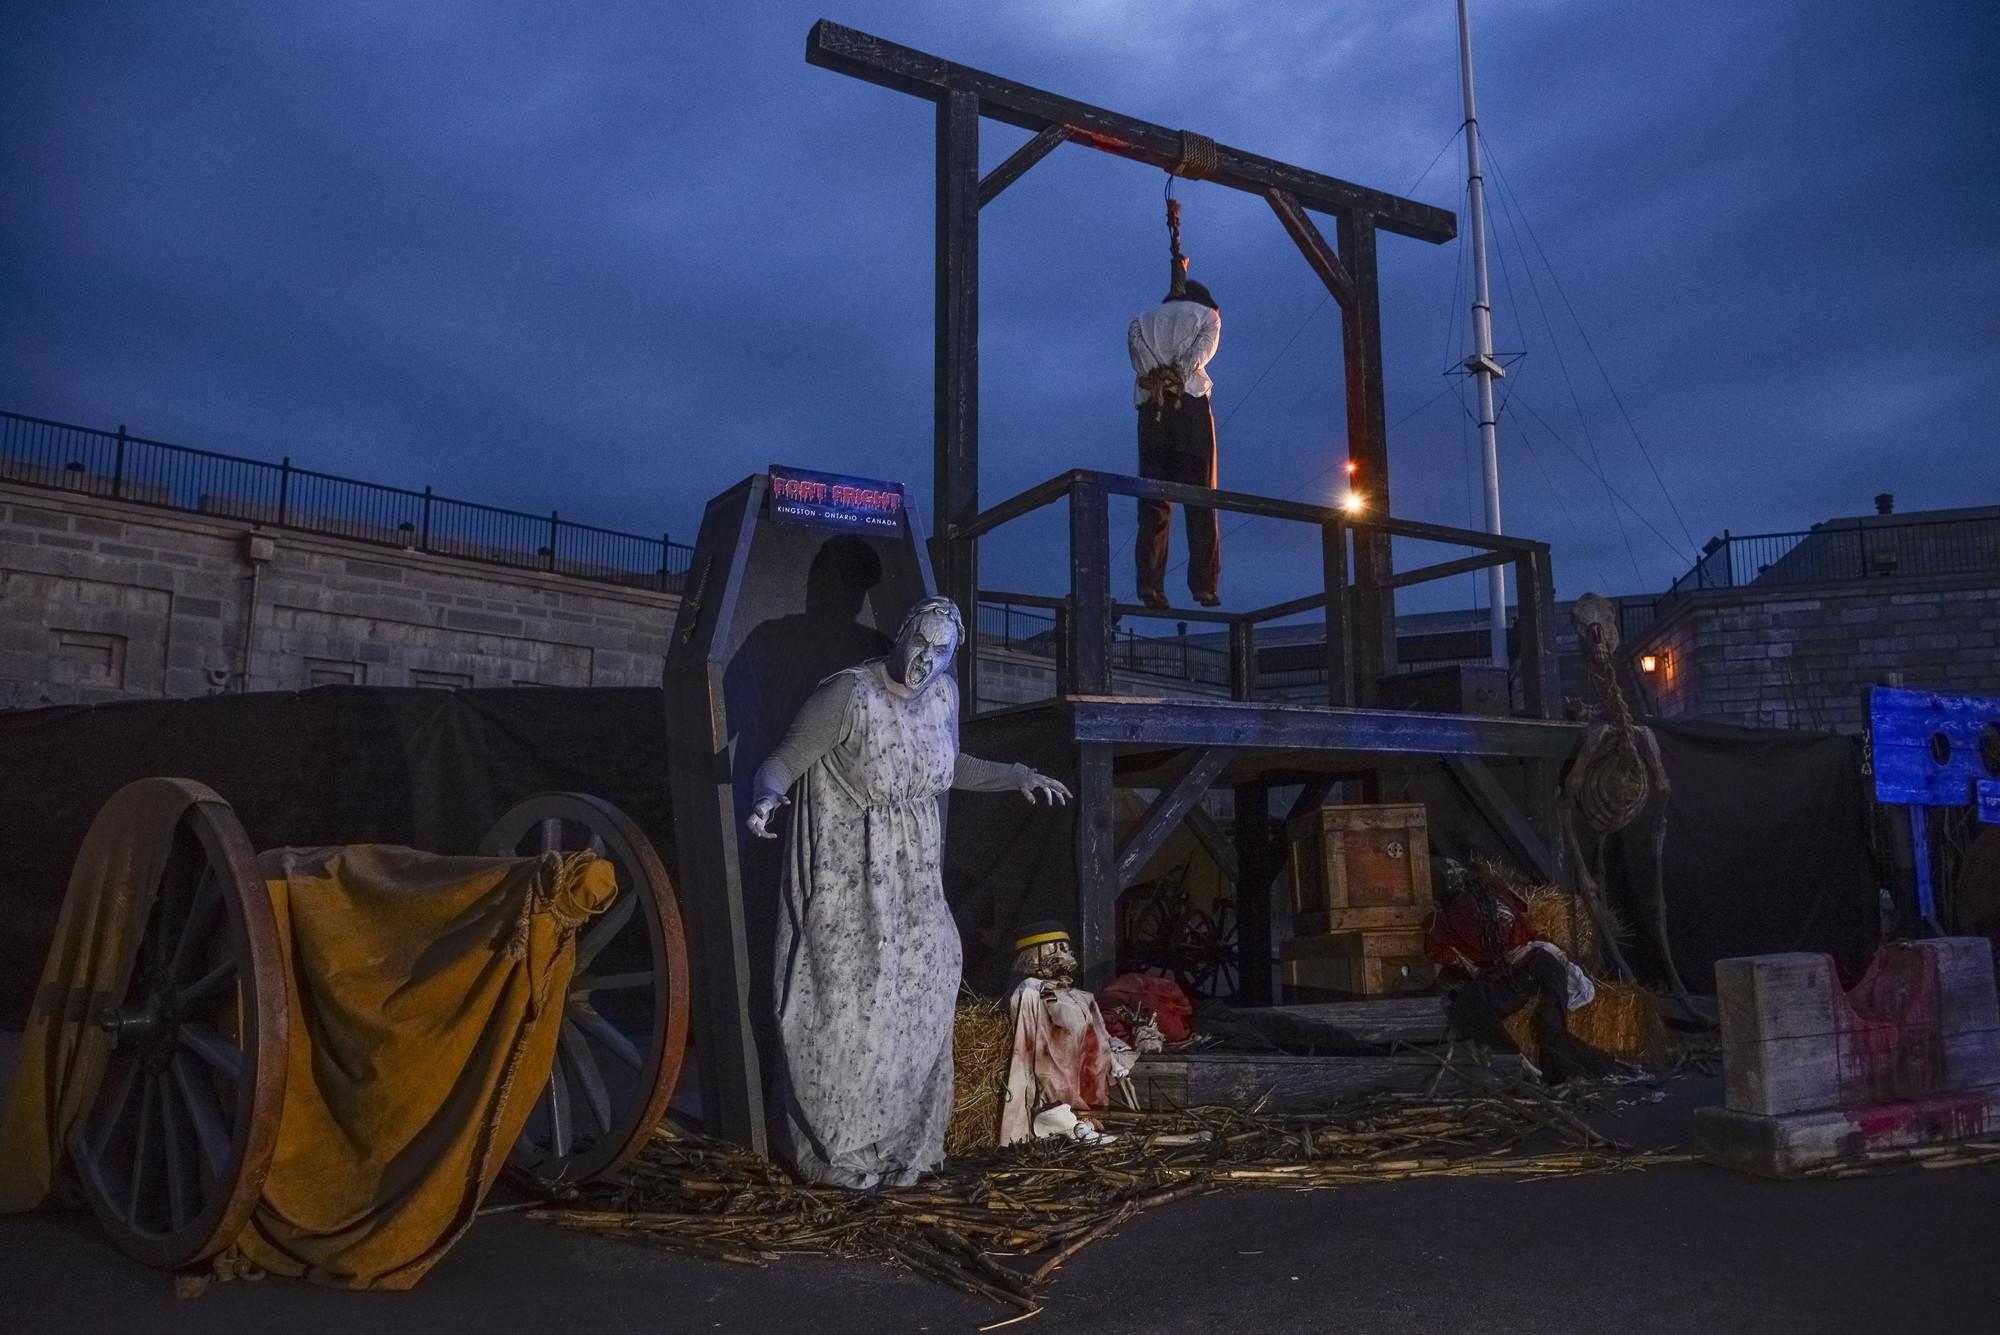 Fort Fright Returns With New Nightmare Scares